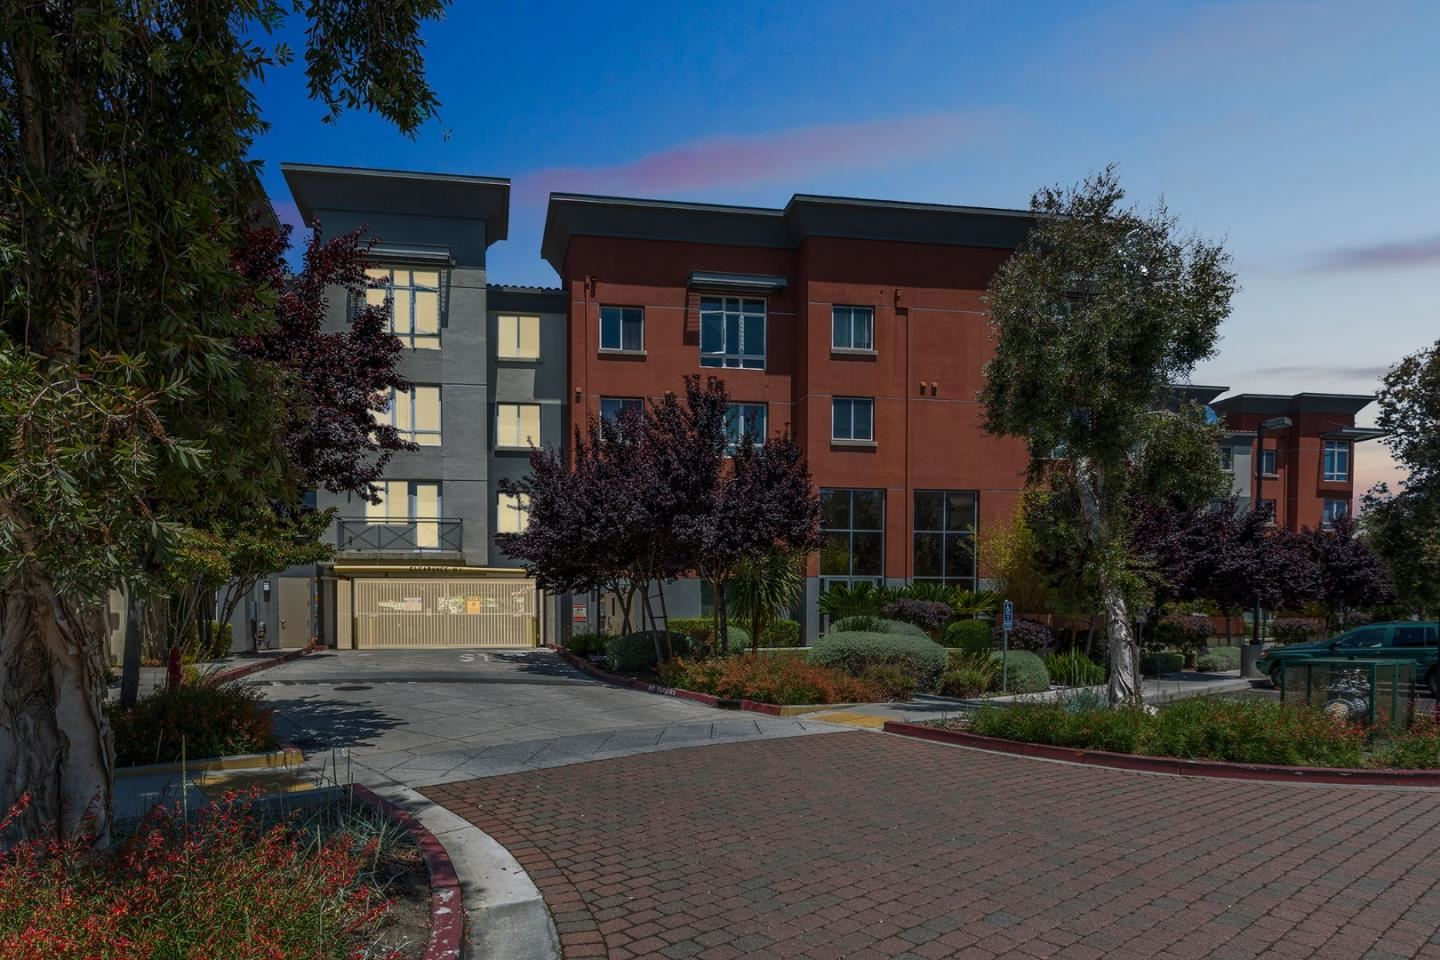 Photo for 1101 S Main ST 303 #303, MILPITAS, CA 95035 (MLS # ML81793795)